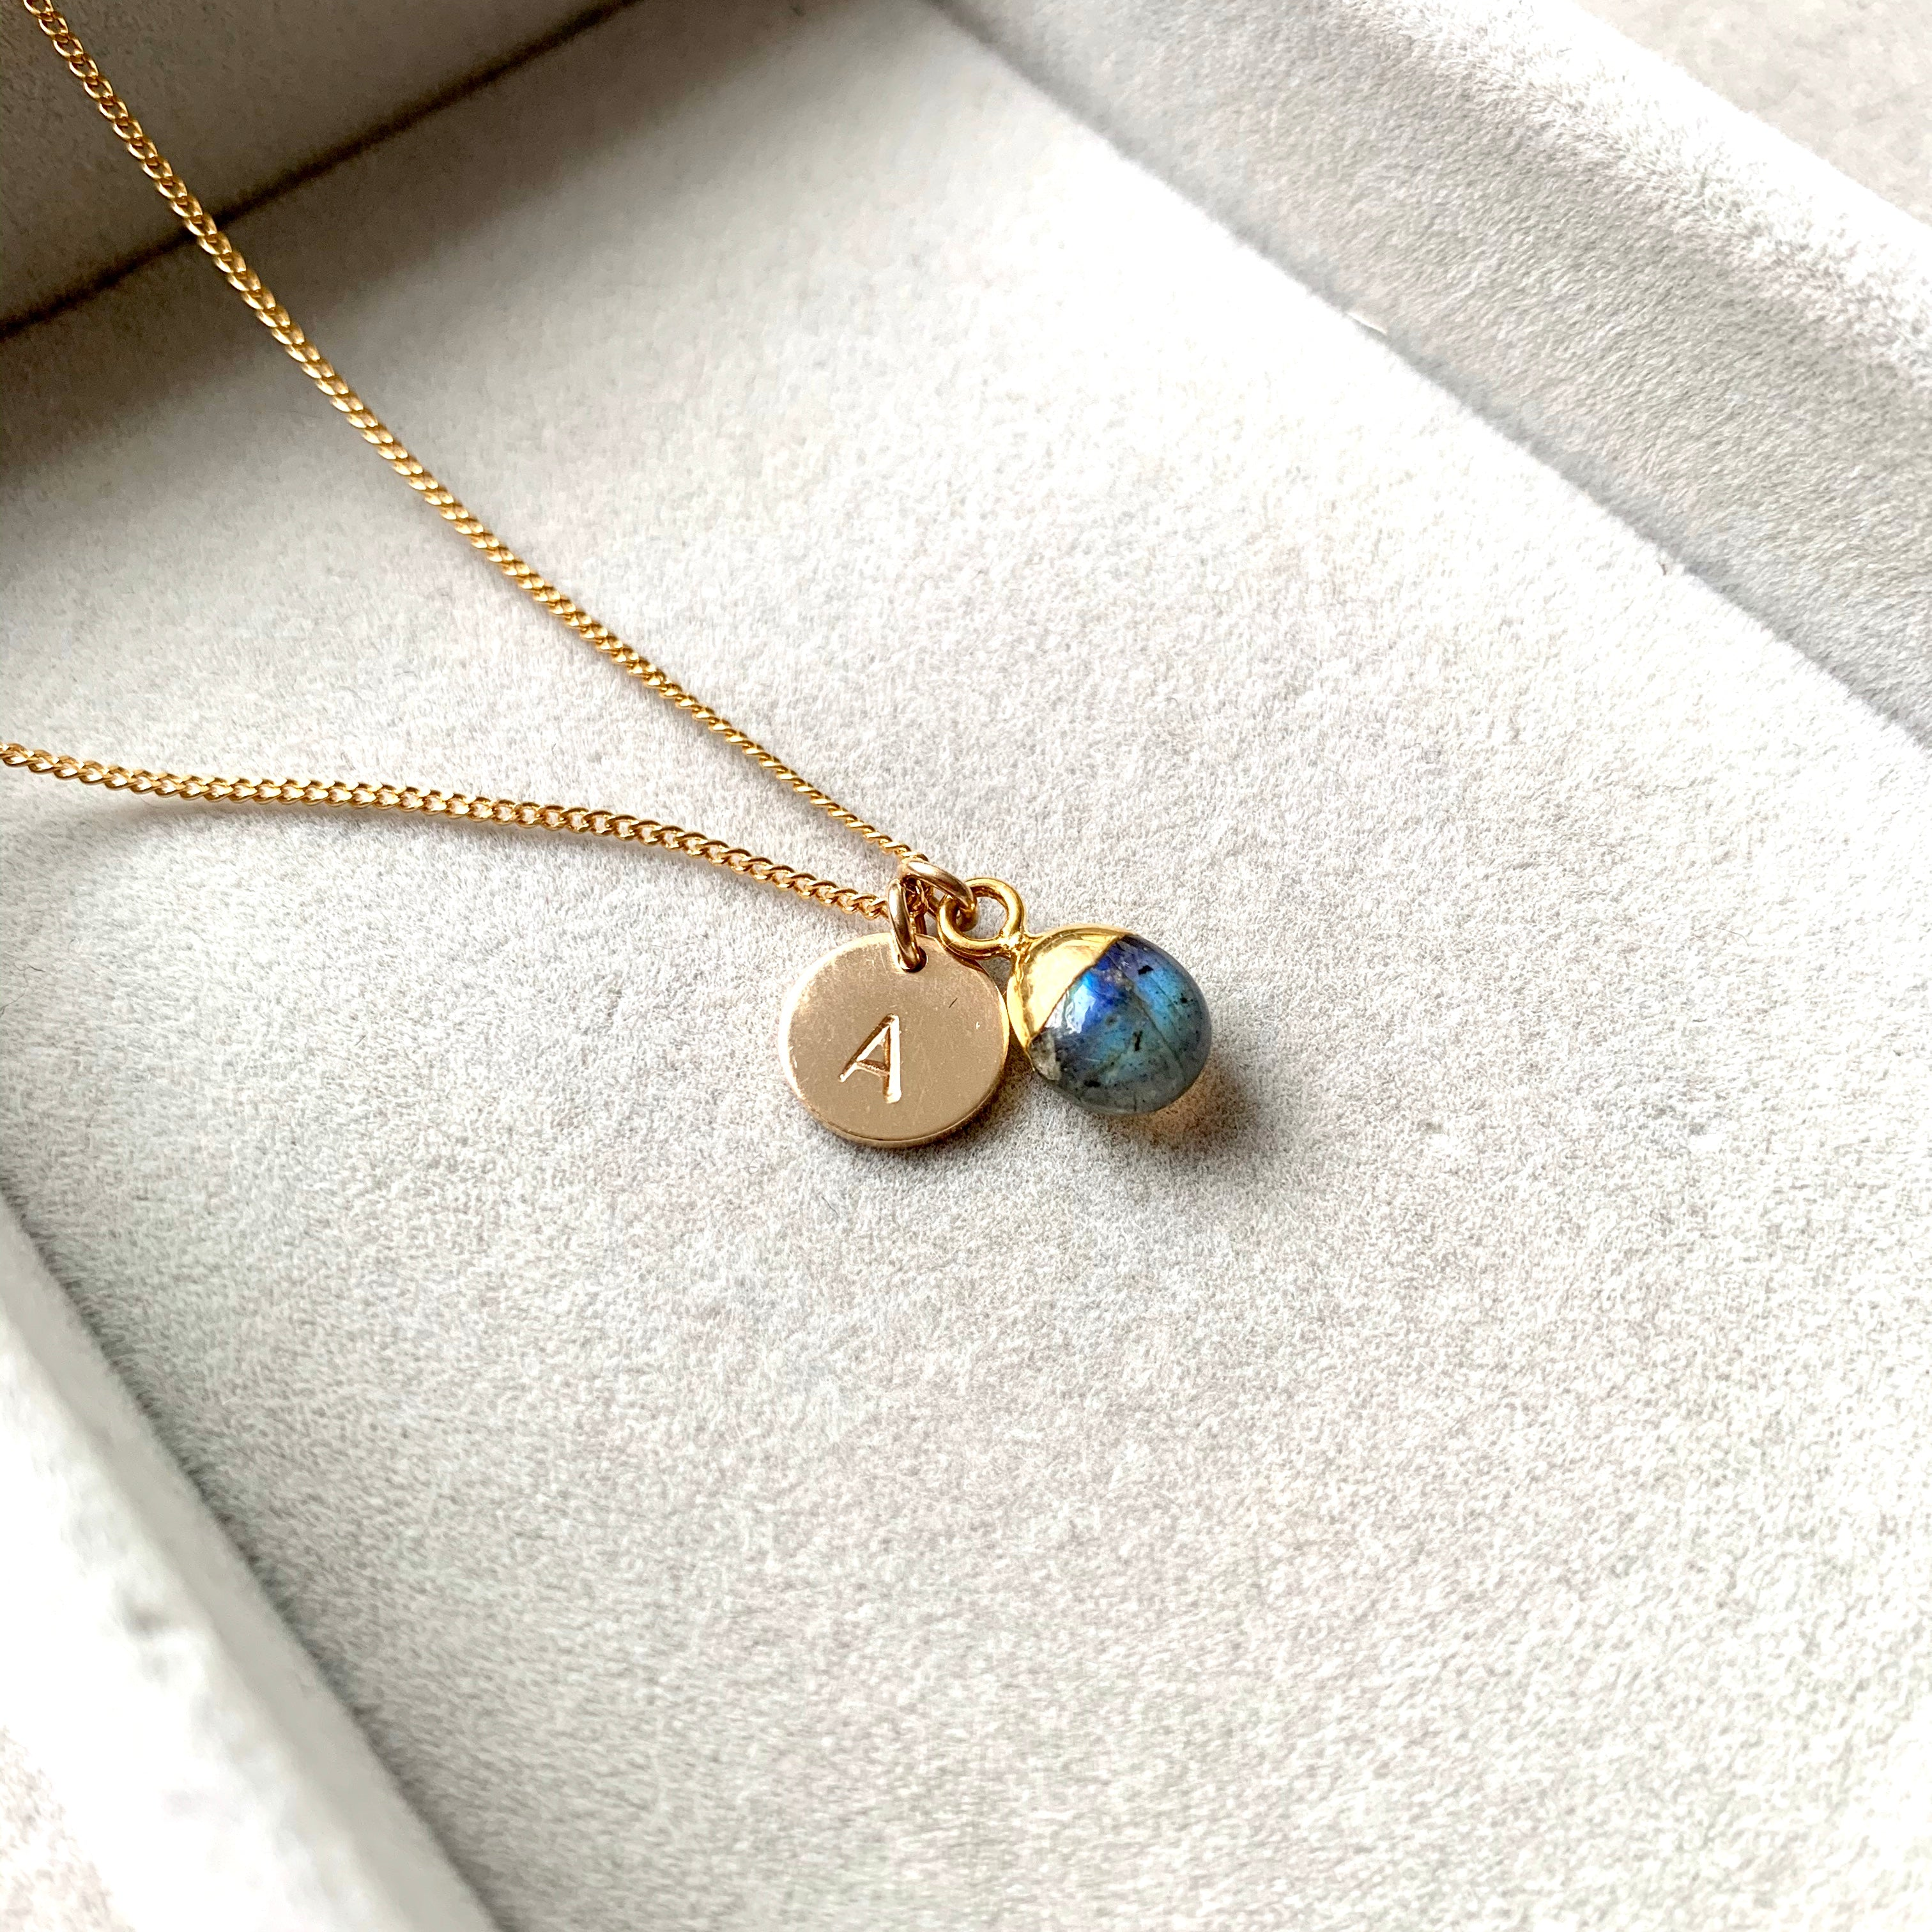 Tiny Tumbled Gemstone Necklace - Labradorite (Adventure) - Decadorn